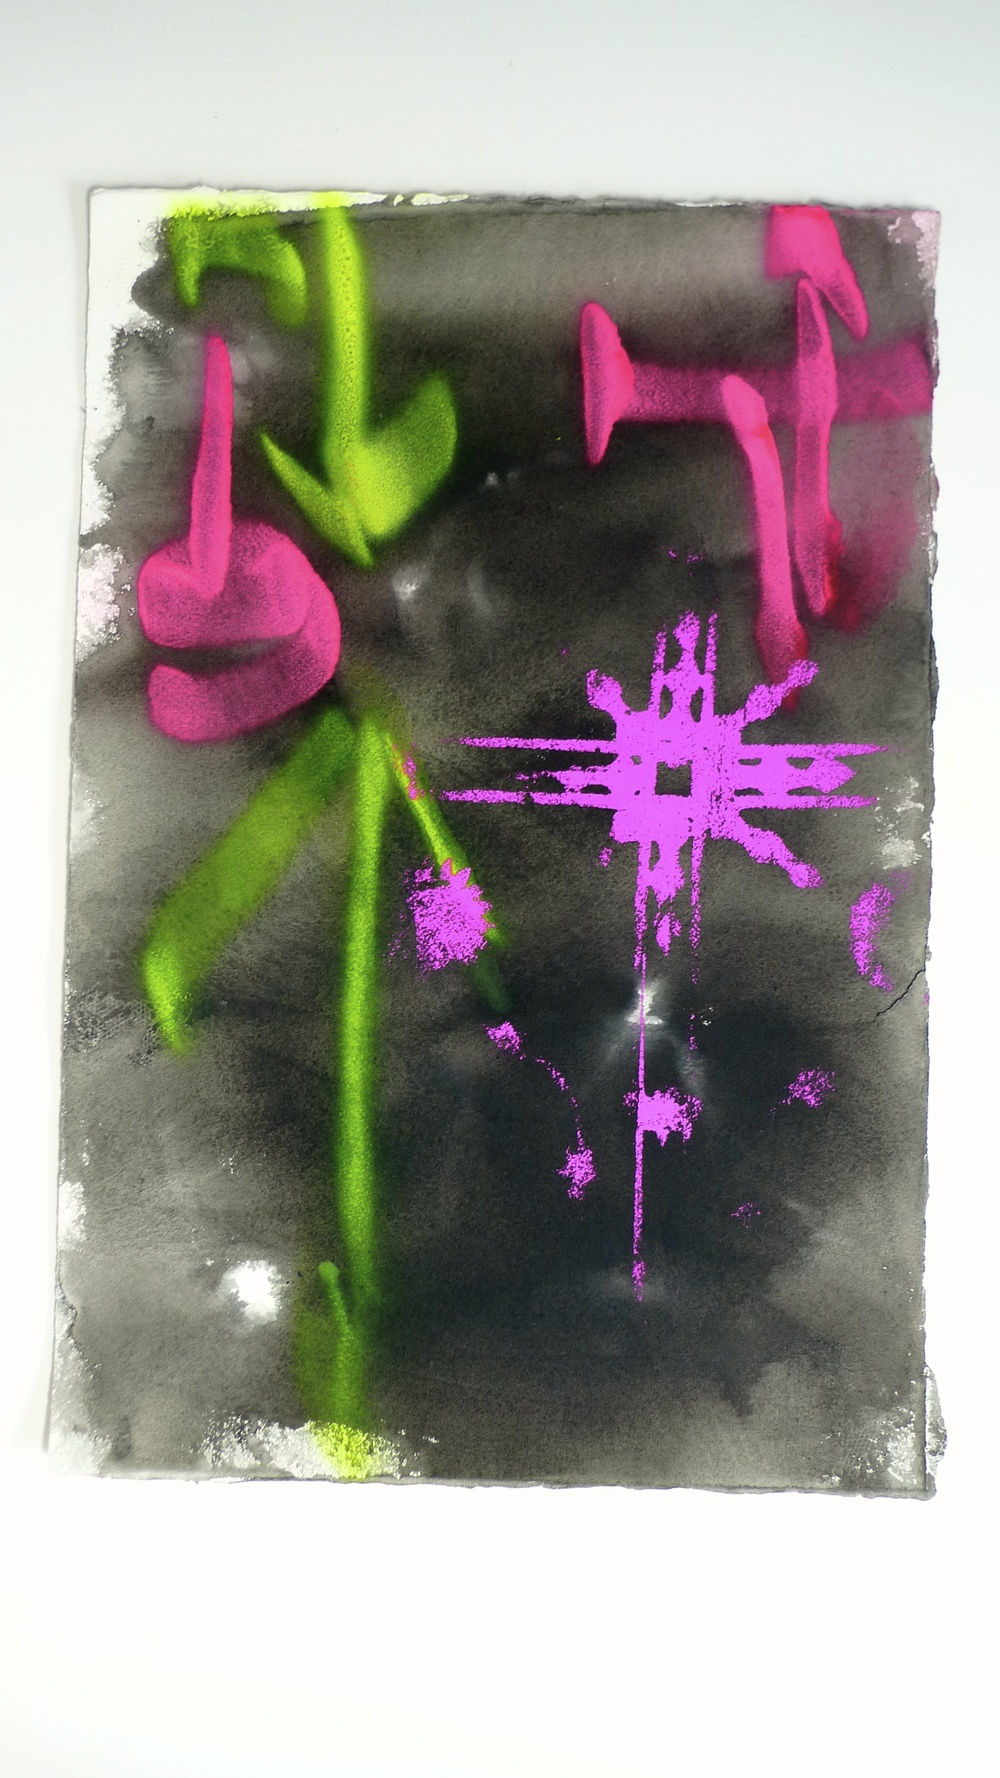 Approach II  (2011)  Flourescent Spray Paint Arches Paper   15 x 22""